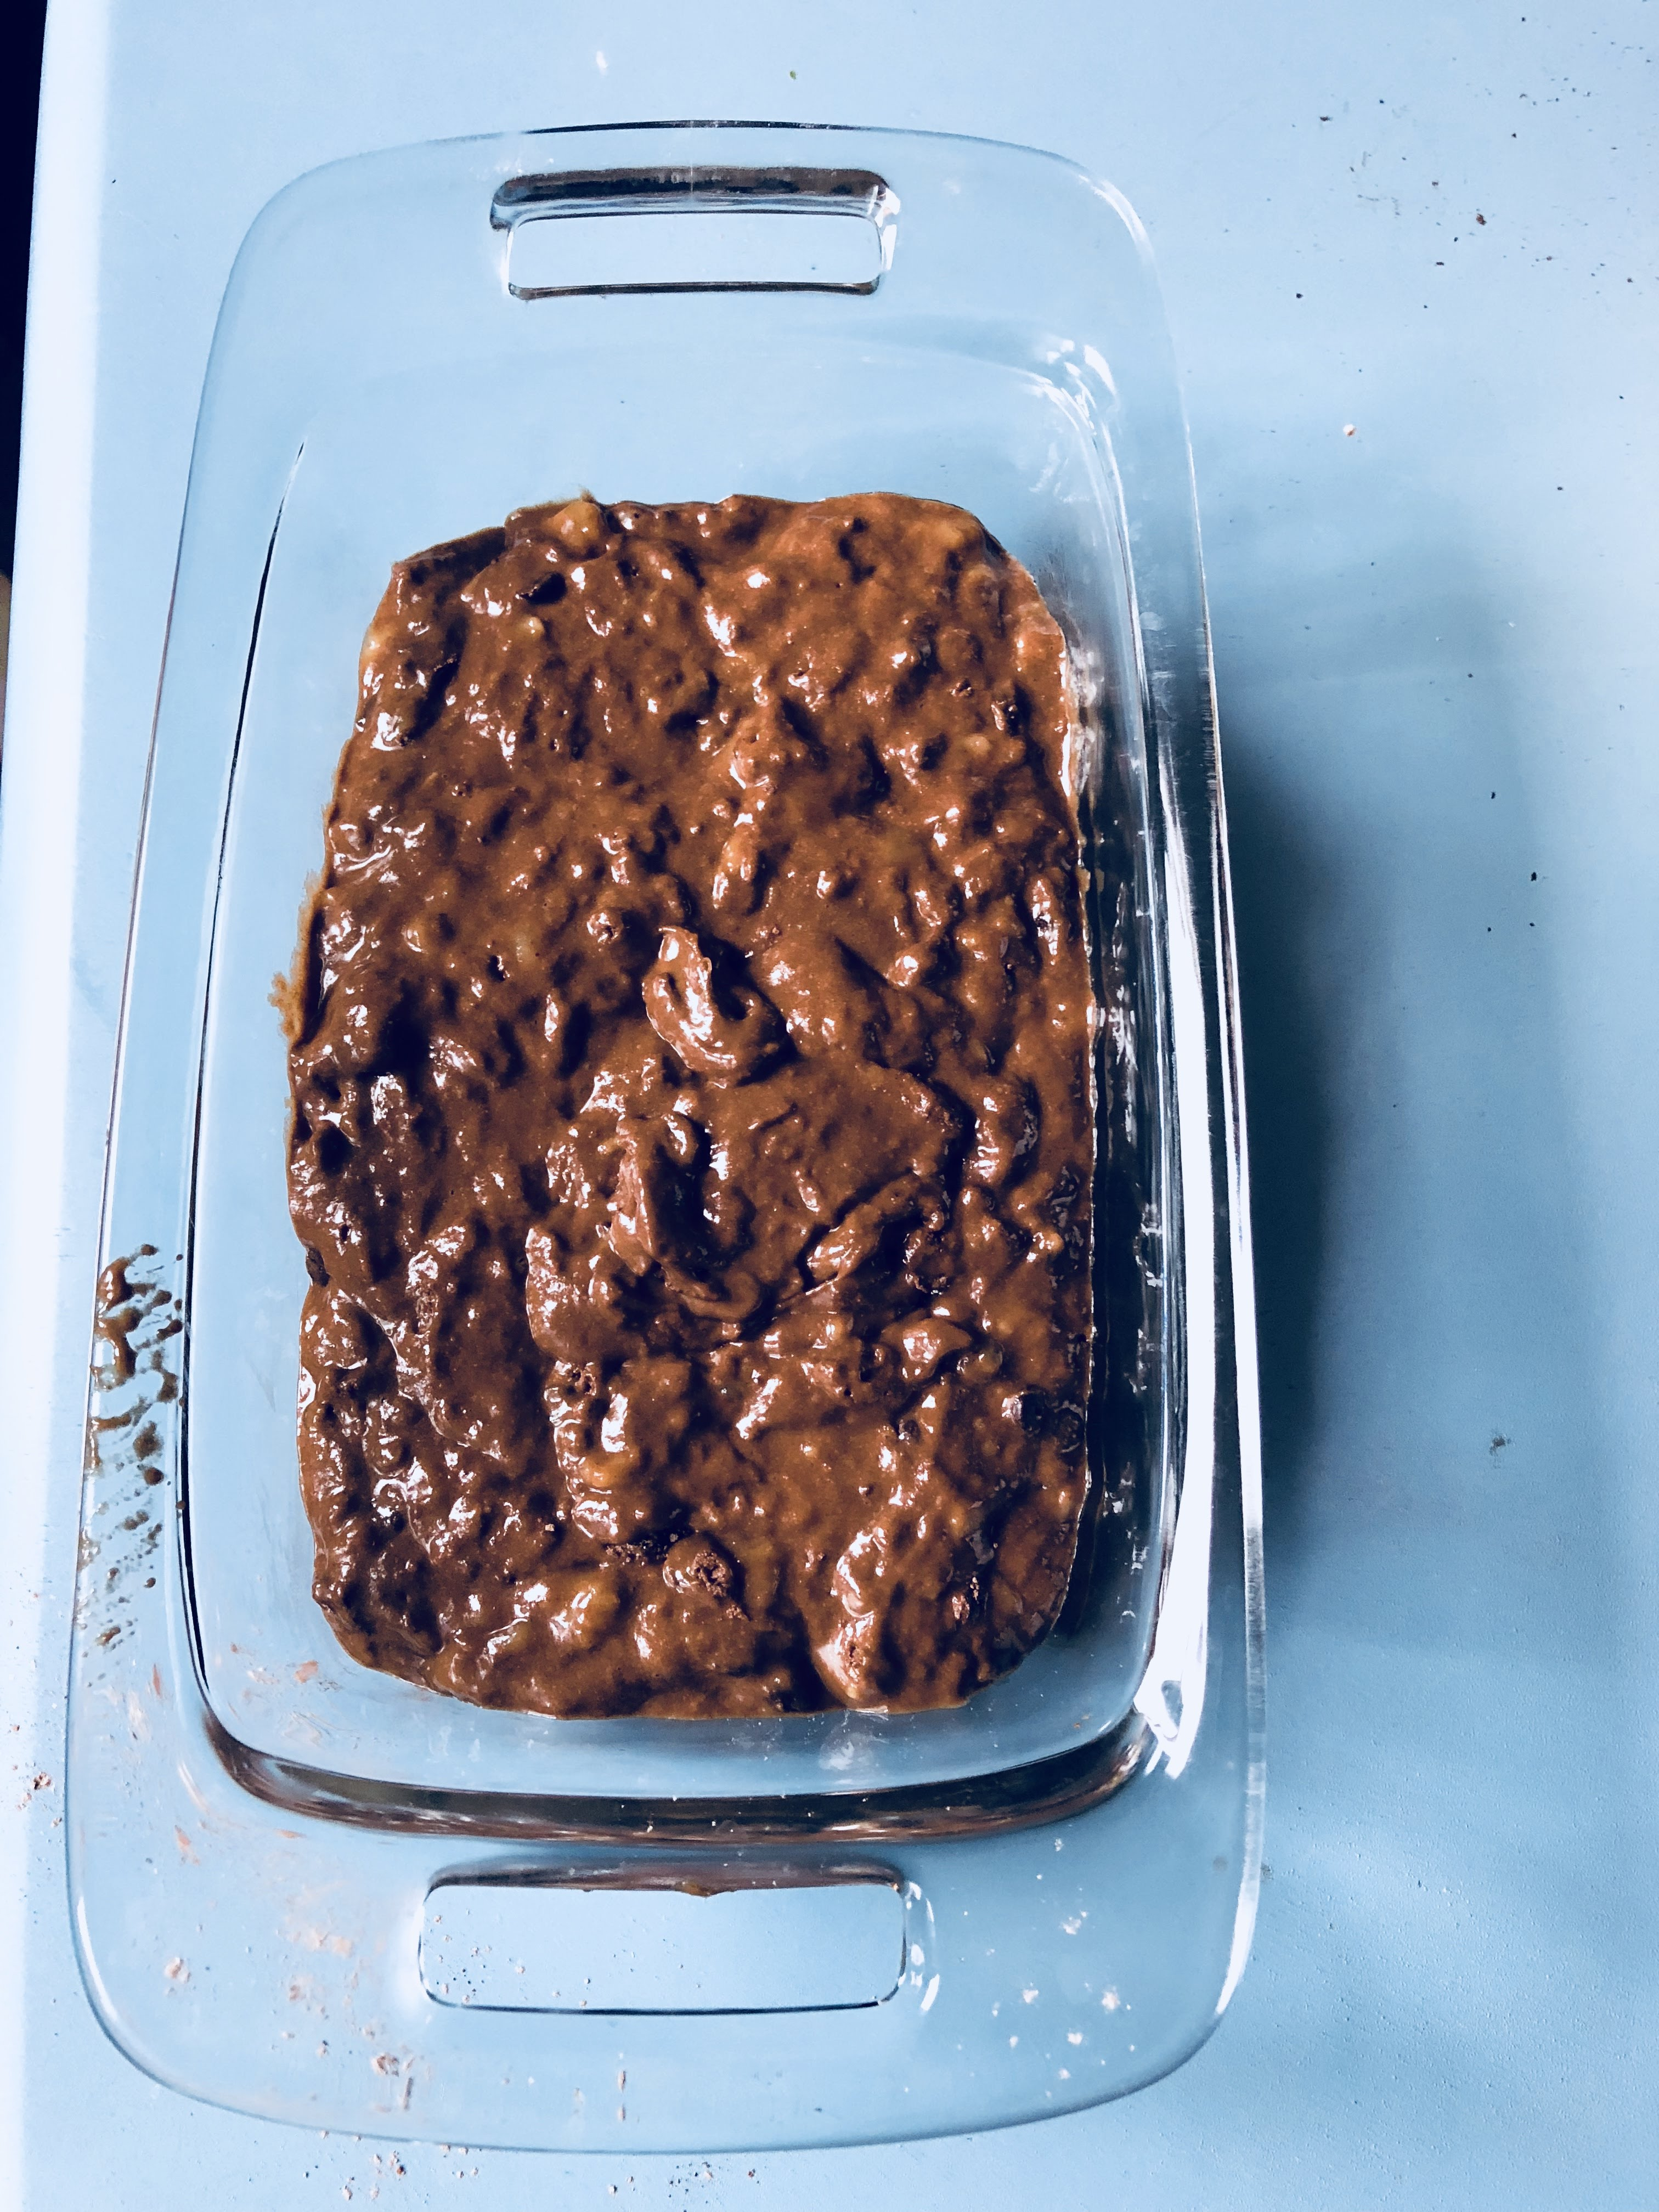 Putting the Chocolate Banana Bread